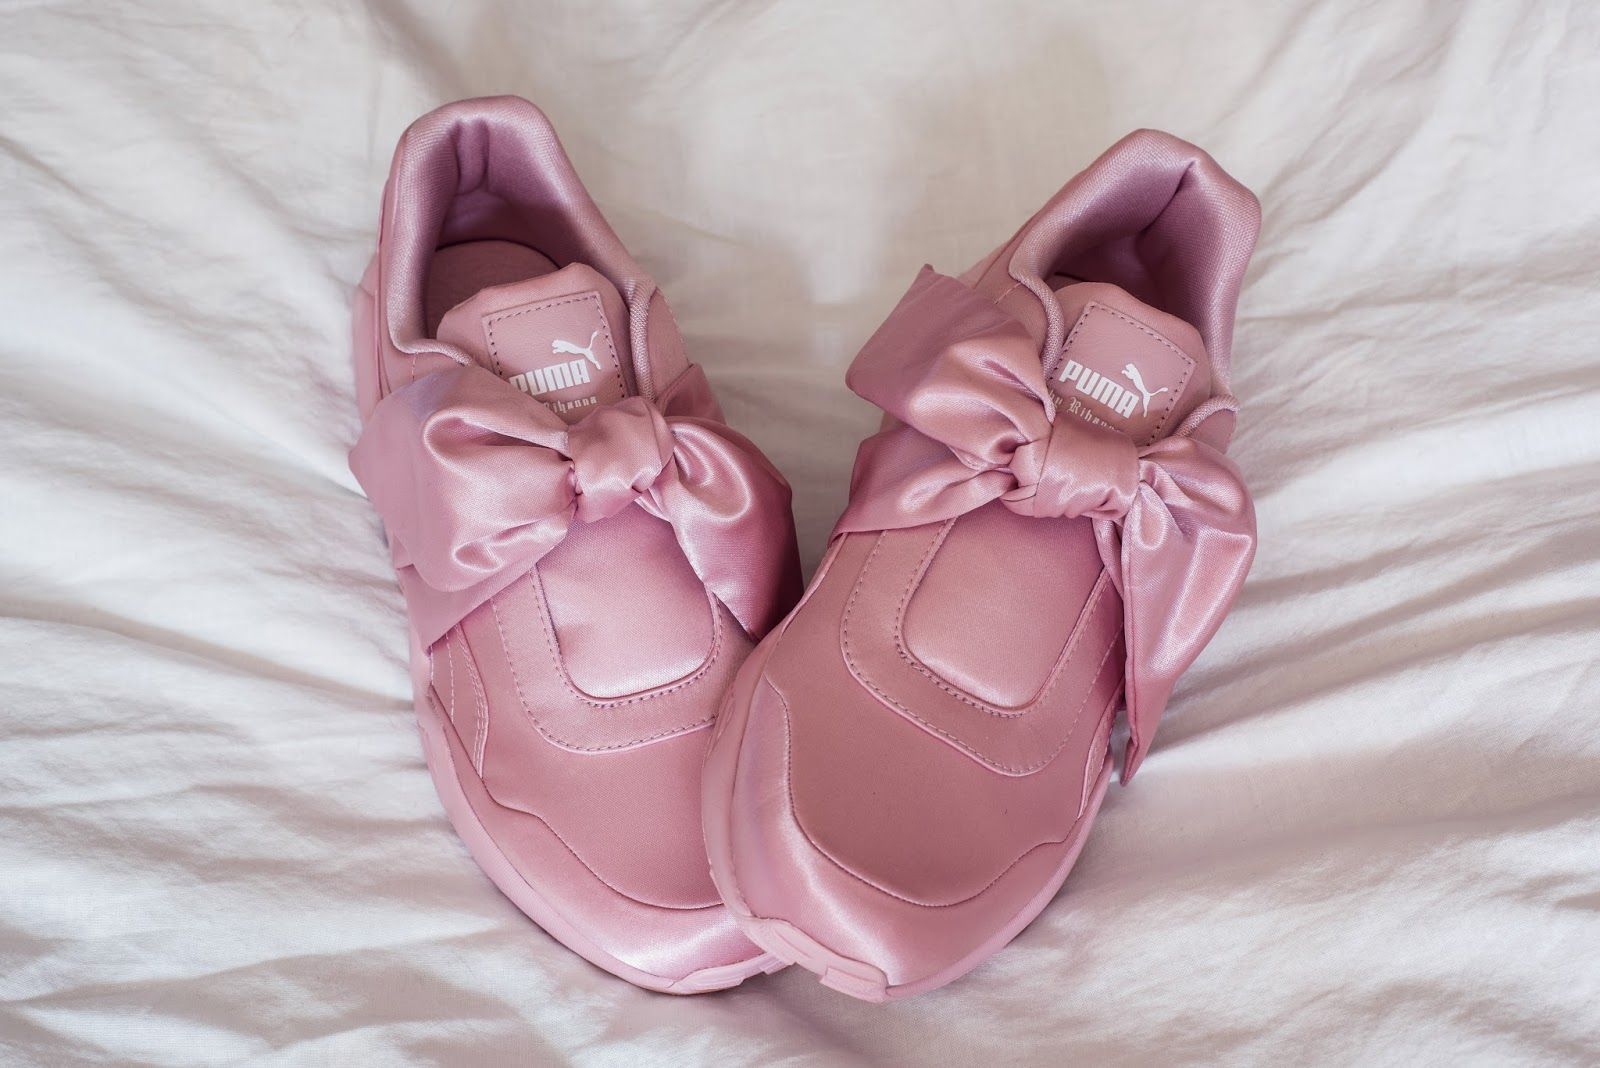 Fenty Puma Rihanna Pink Bow Sneakers | Rose Kiara Peaches